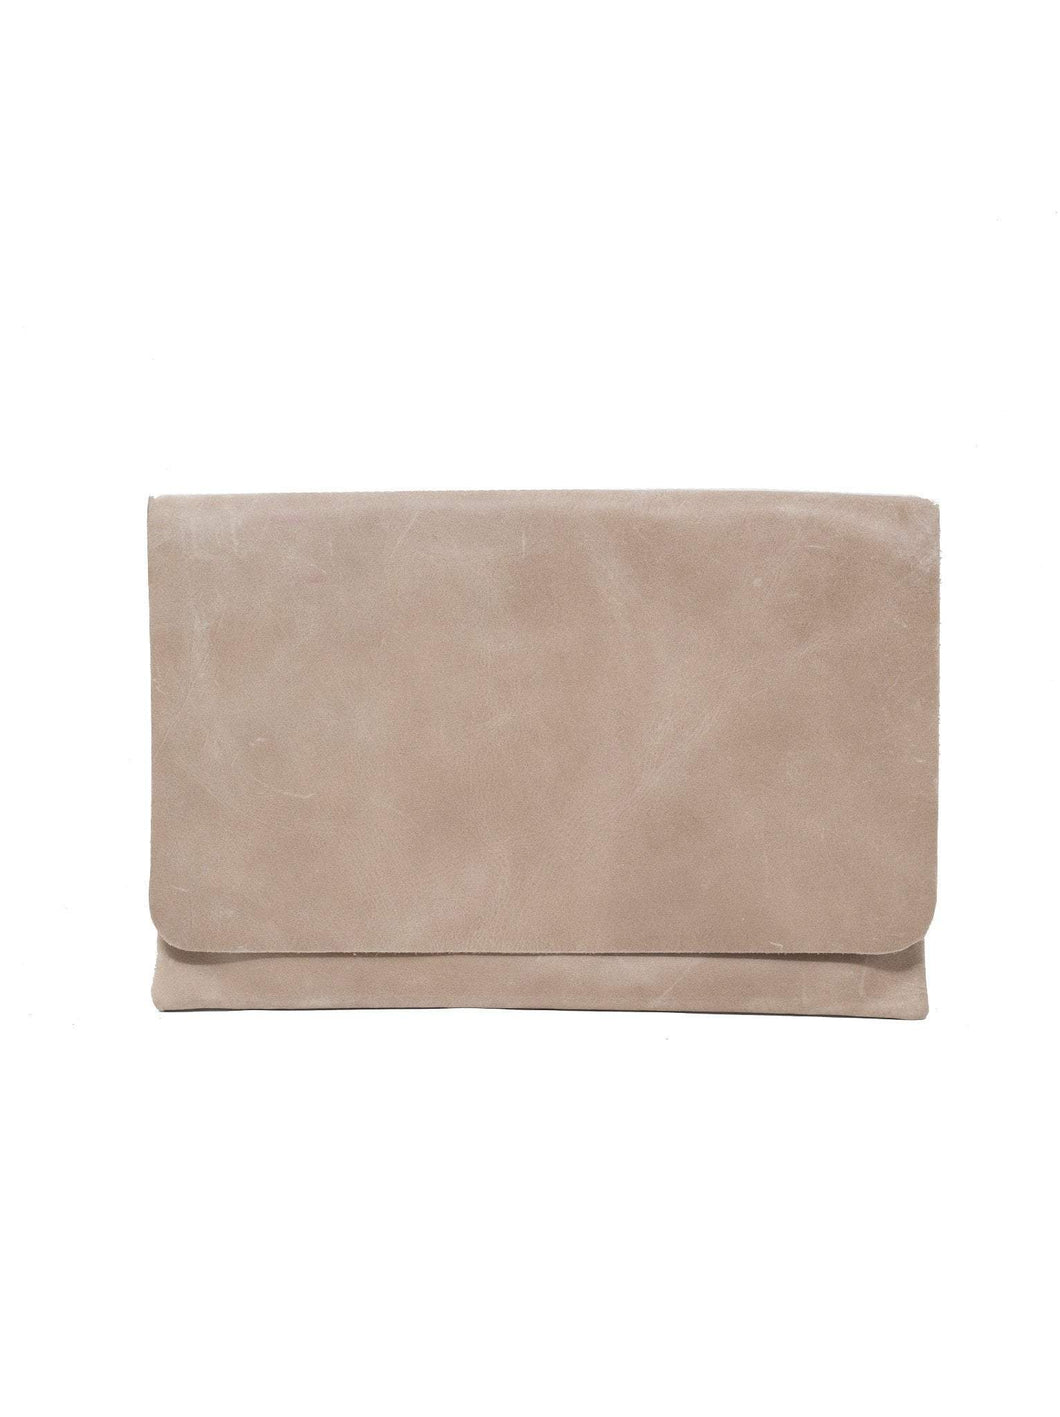 The Mare Zip Pouch in Fog by ABLE